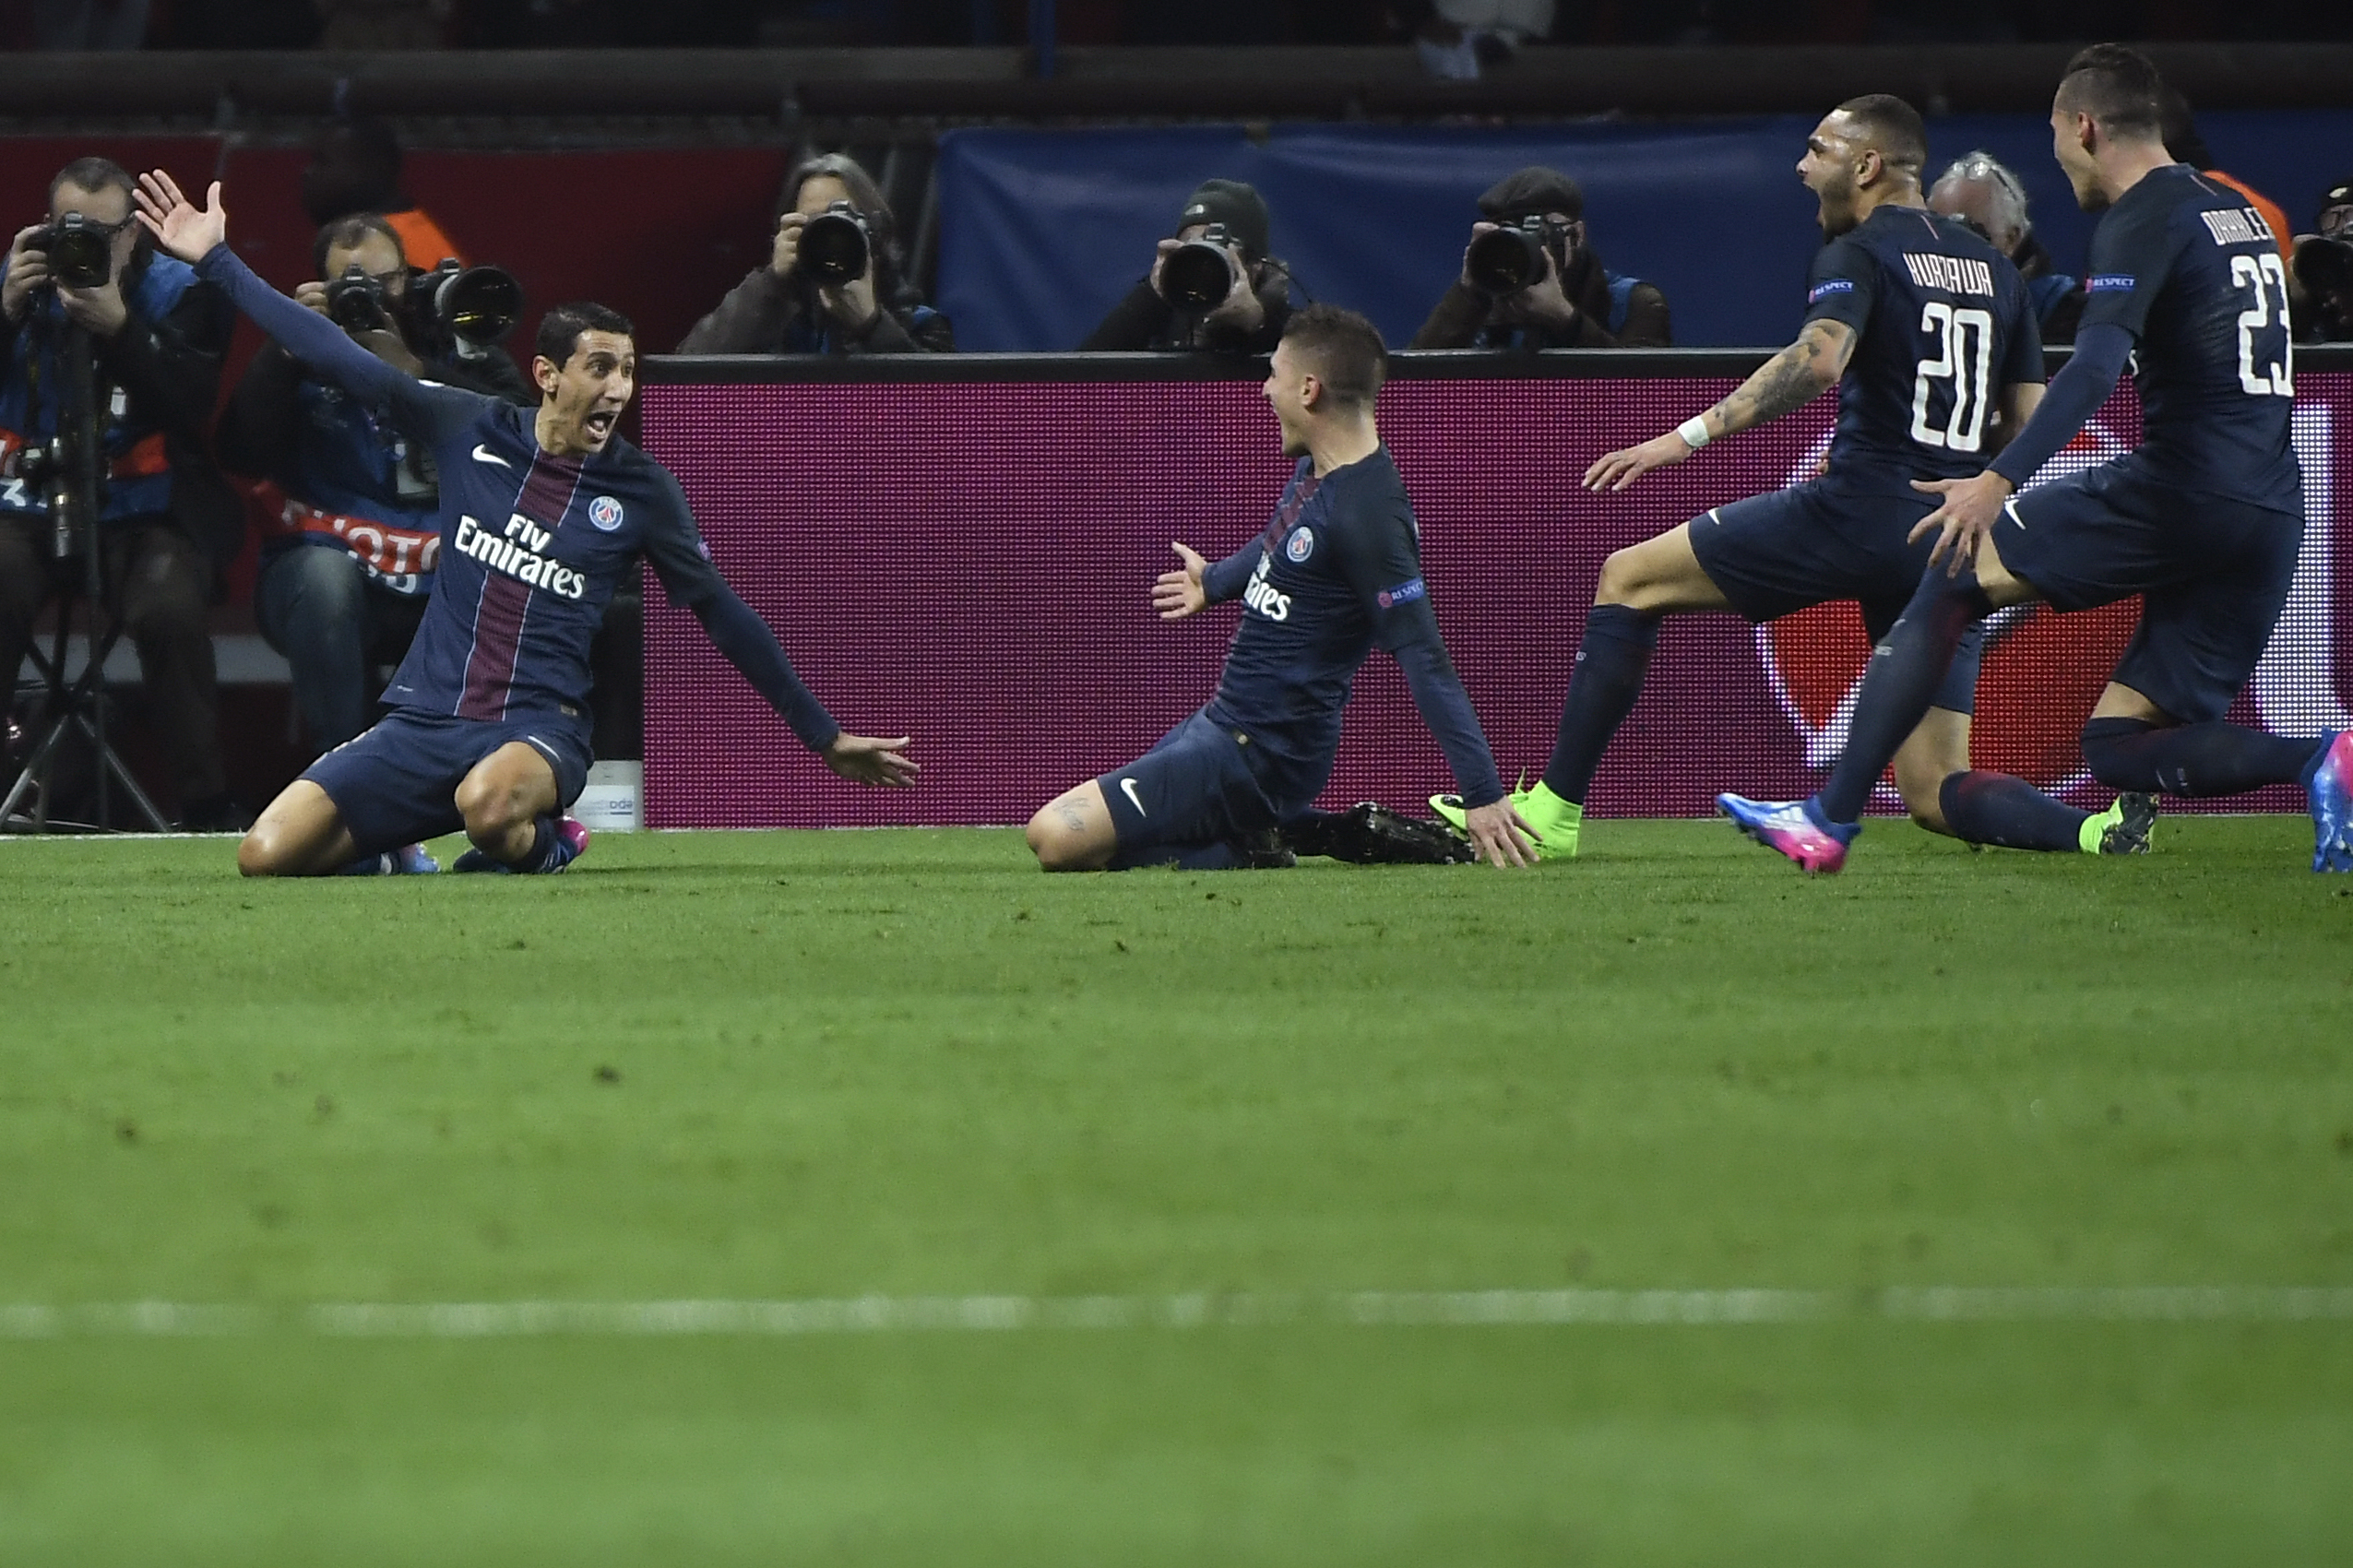 psg vs barcelona score and reaction from 2017 champions league round of 16 bleacher report. Black Bedroom Furniture Sets. Home Design Ideas